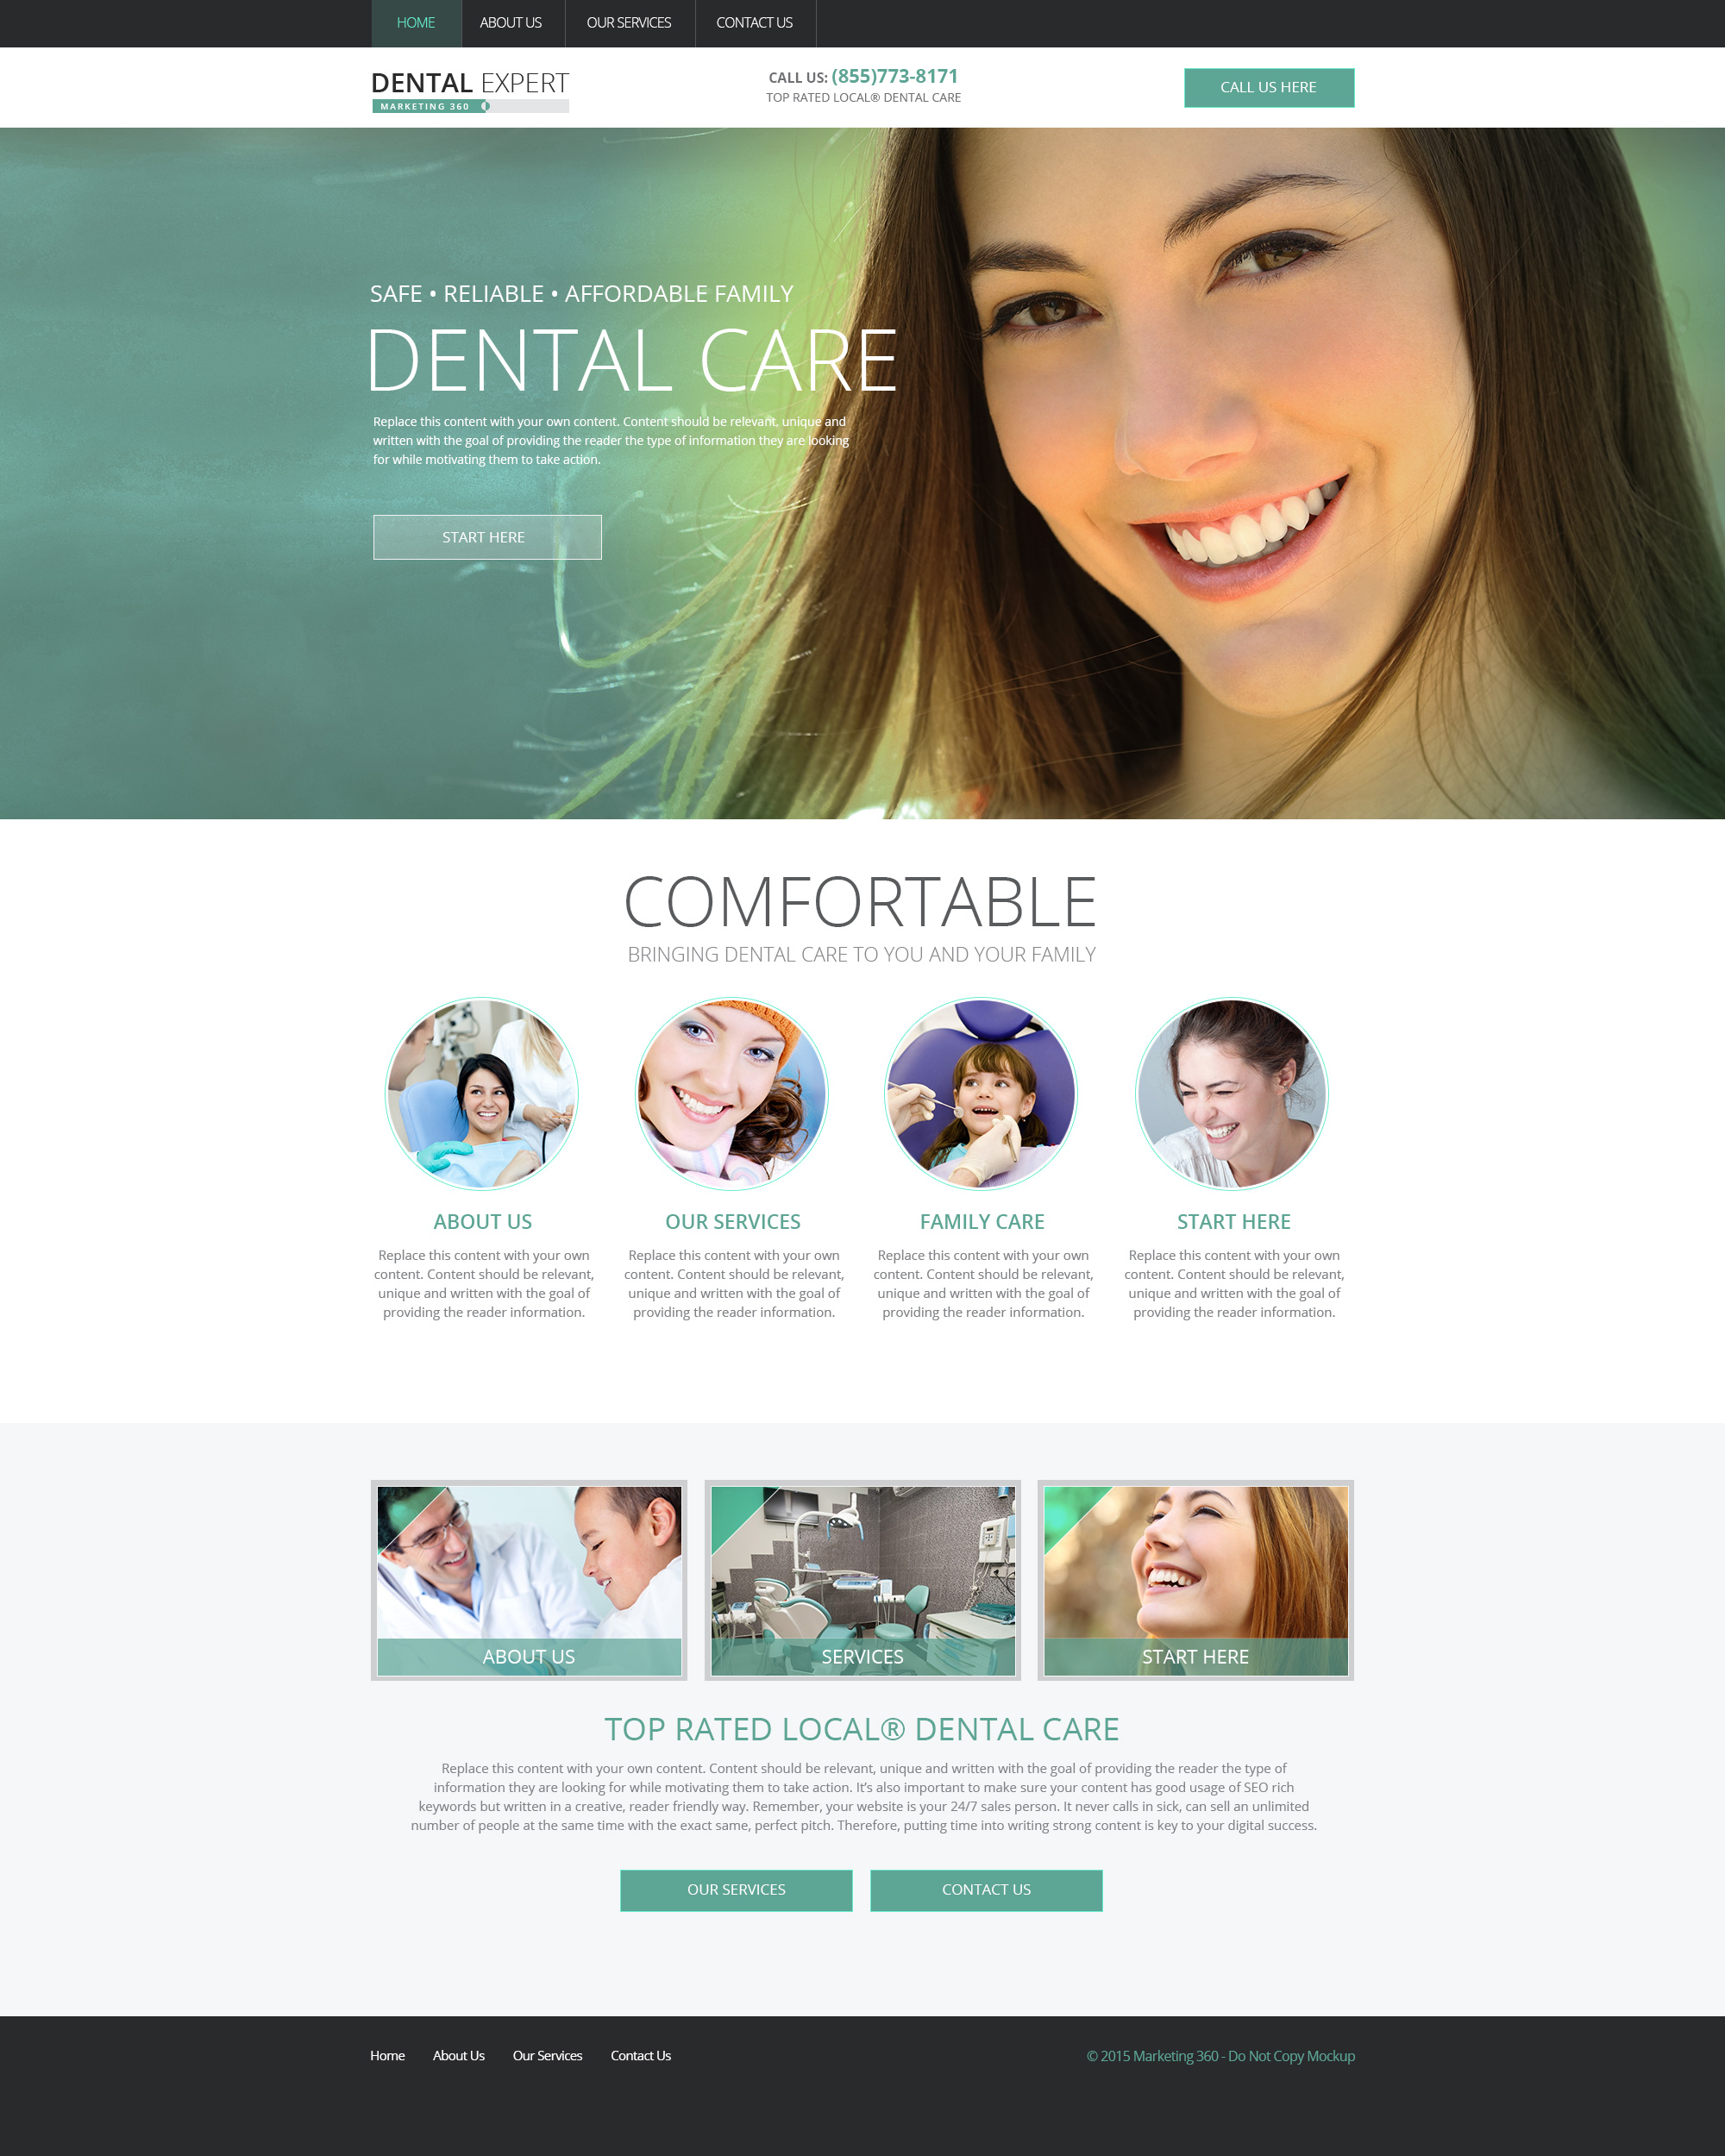 Dental Website Templates - Mobile Responsive Web Design for Dentists